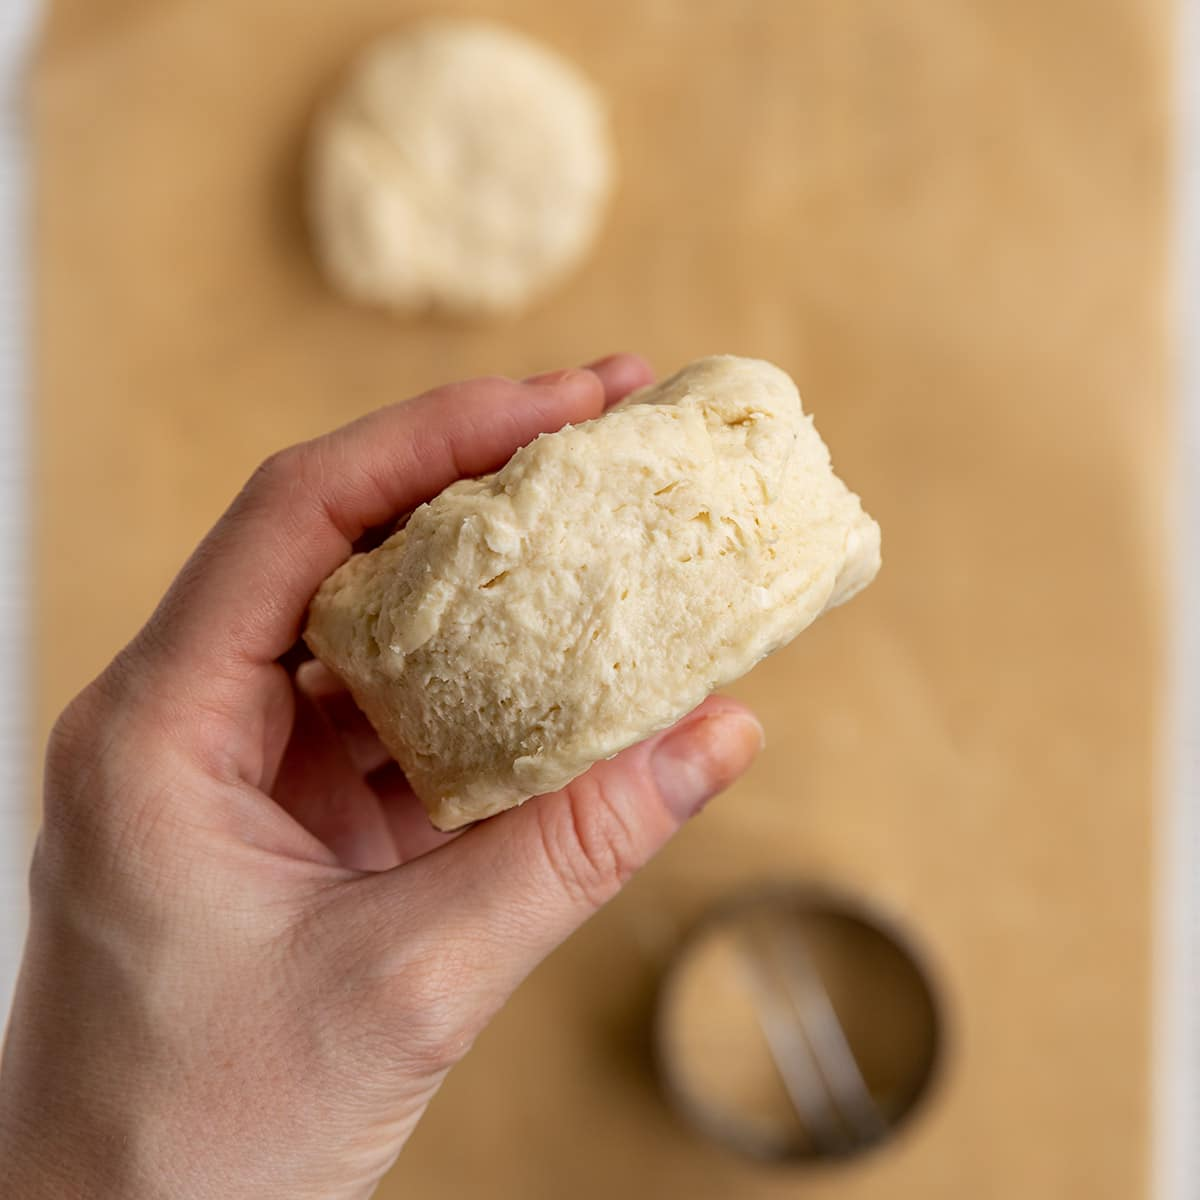 hand holding up an uncooked circle biscuit